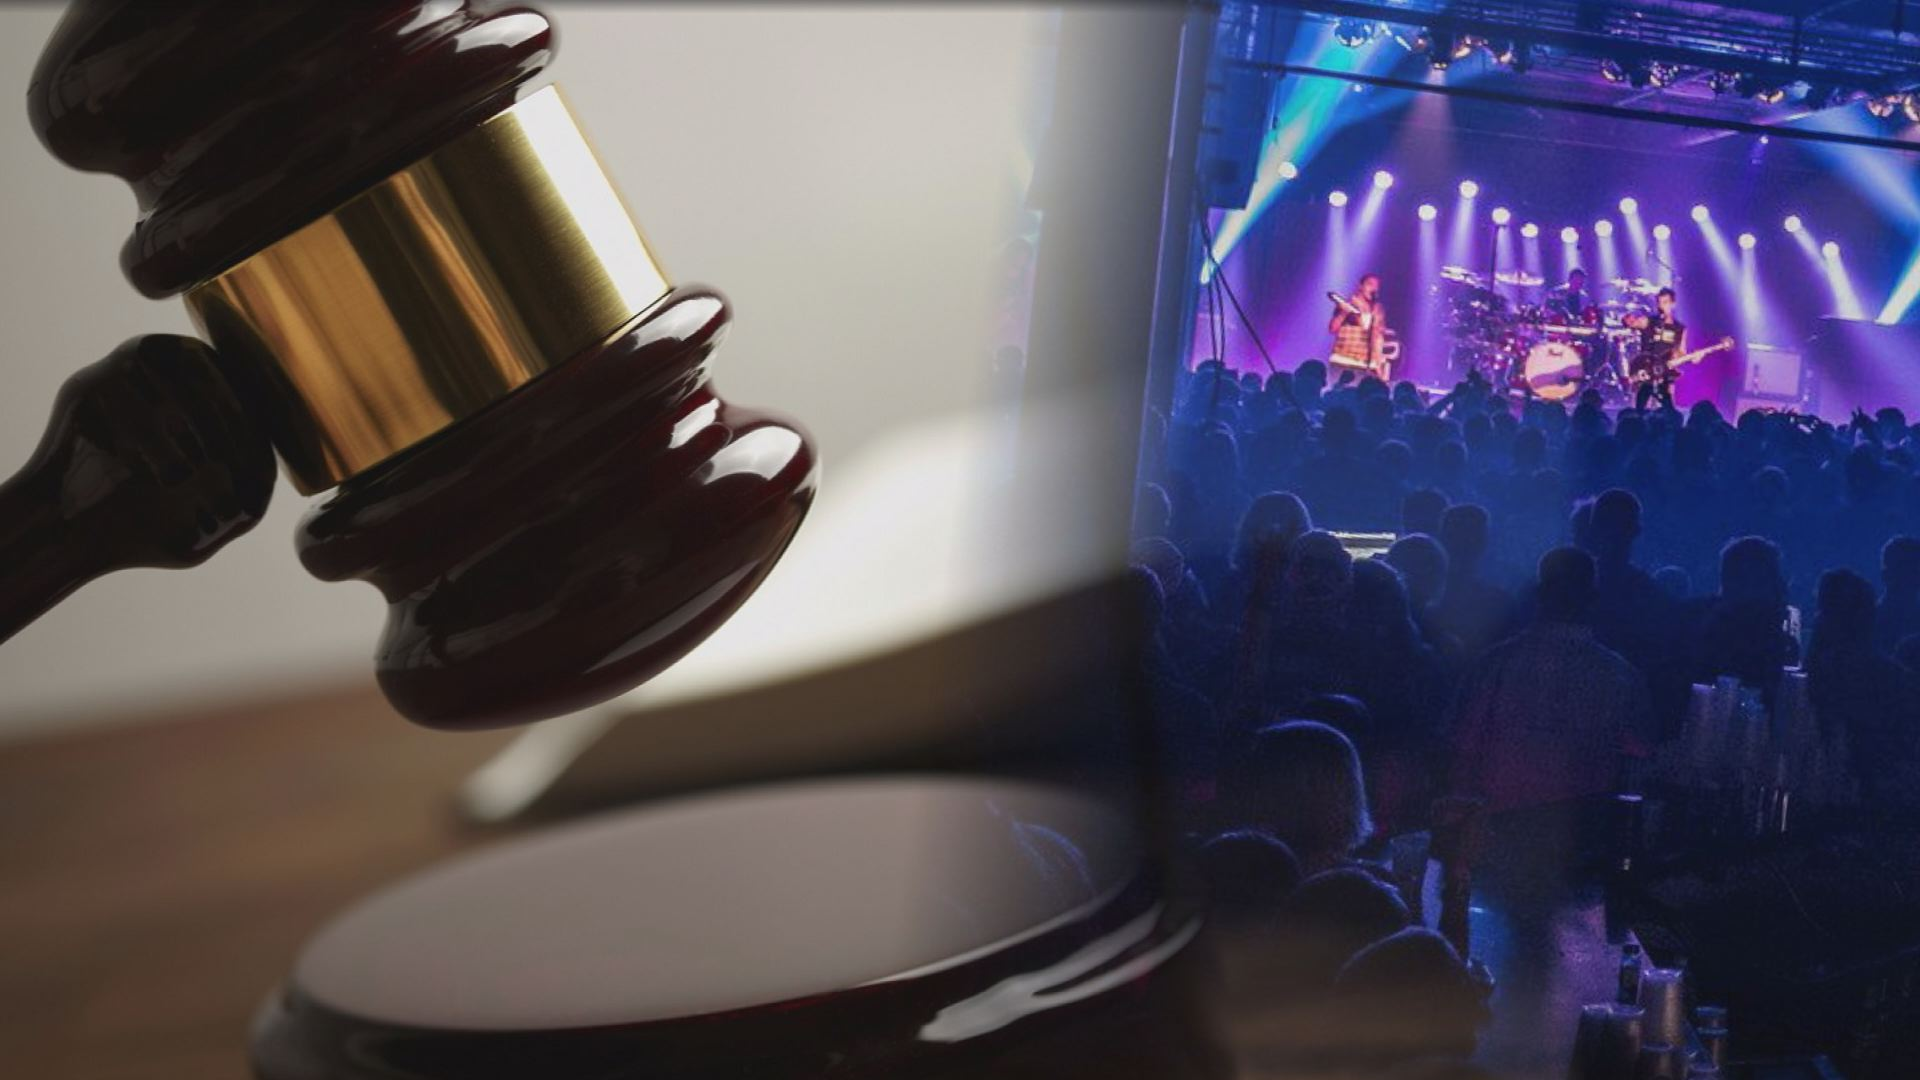 concert lawsuit_1517591041015.jpg.jpg